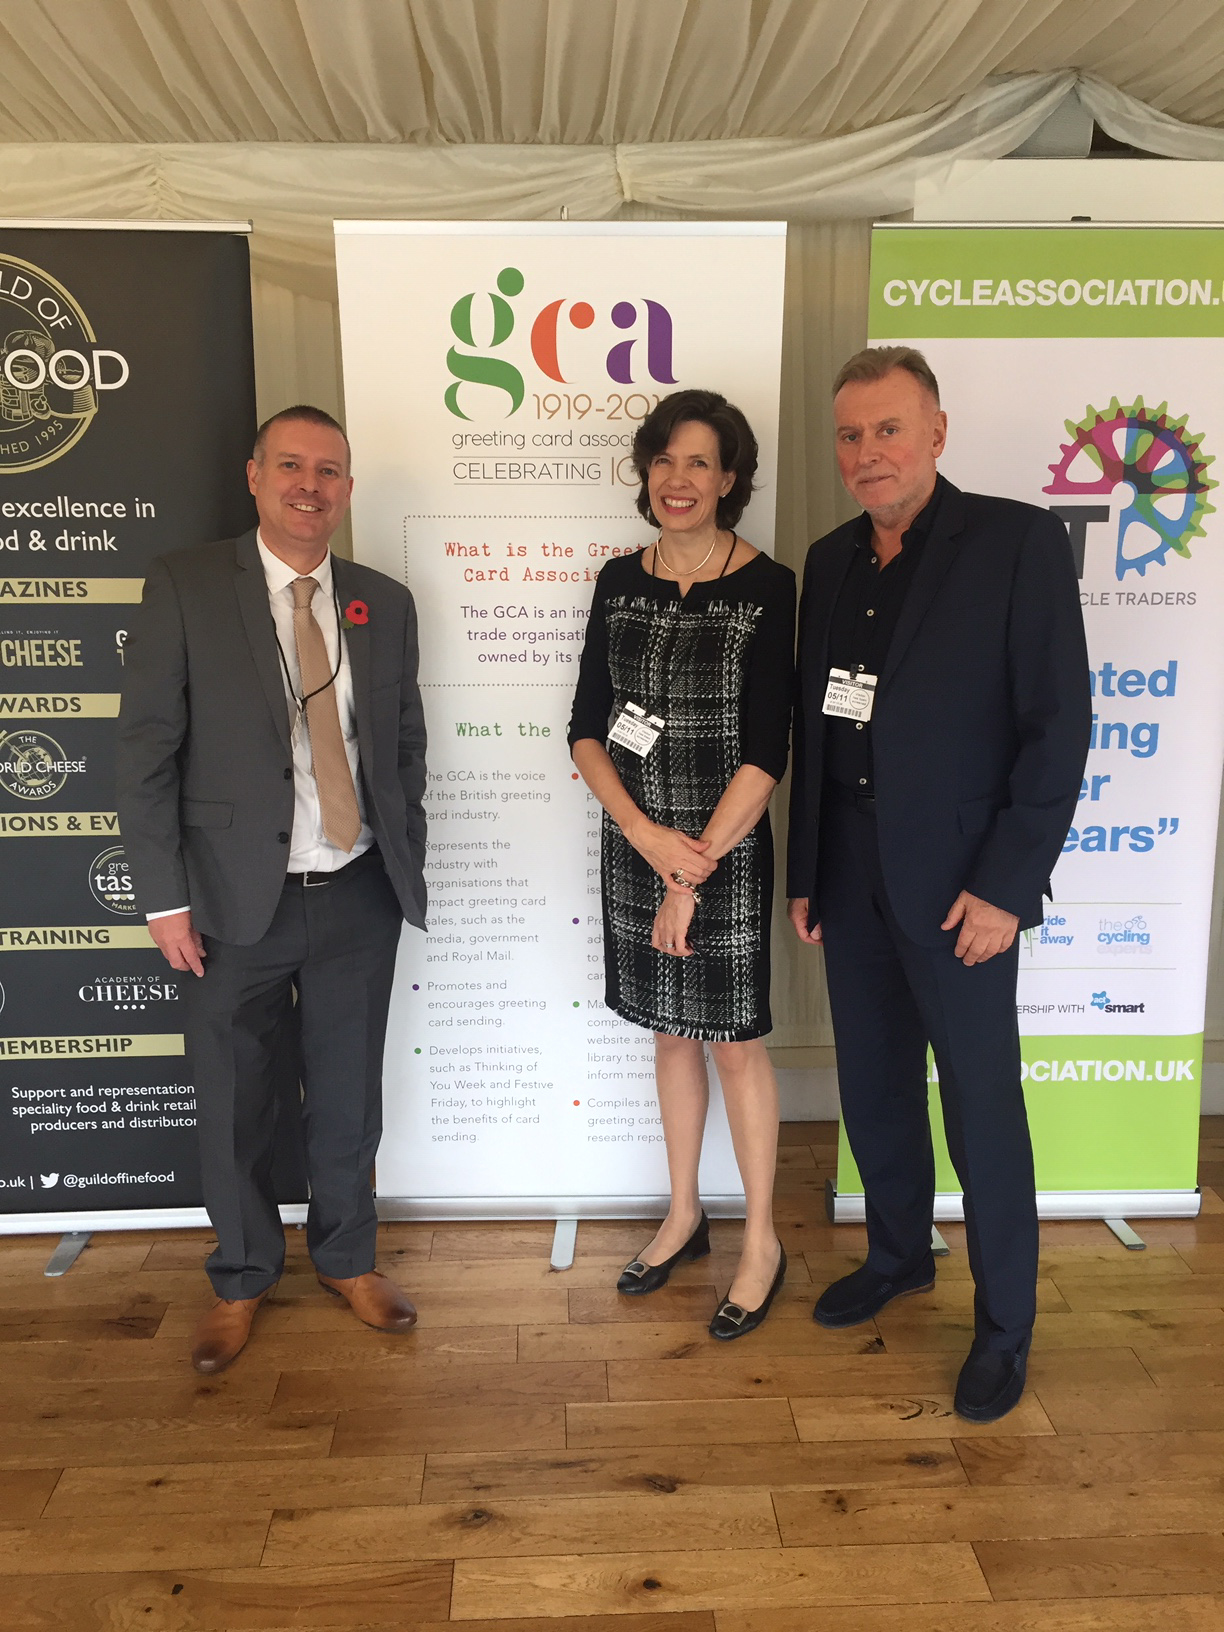 Above: IRC chairman, Mark Walmsley (right) with Amanda Fergusson, ceo of the GCA and Chris Hall, head of business development of ActSmart in Houses of Parliament in front of the GCA banner.